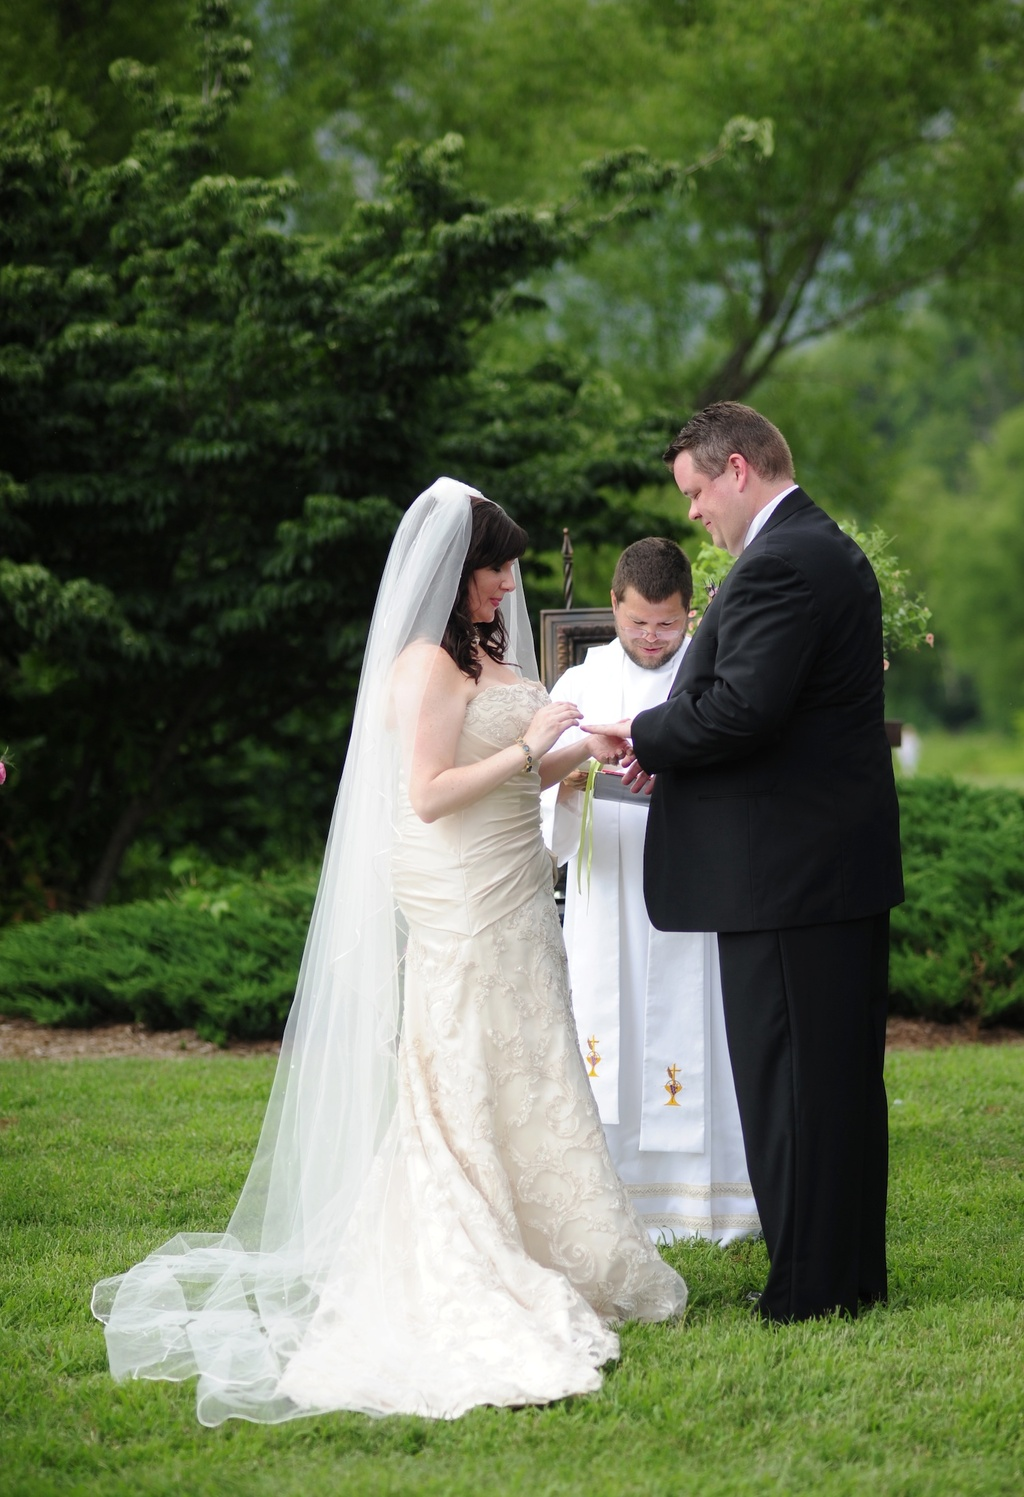 Real-wedding-north-carolina-outdoor-ceremony-vows.full